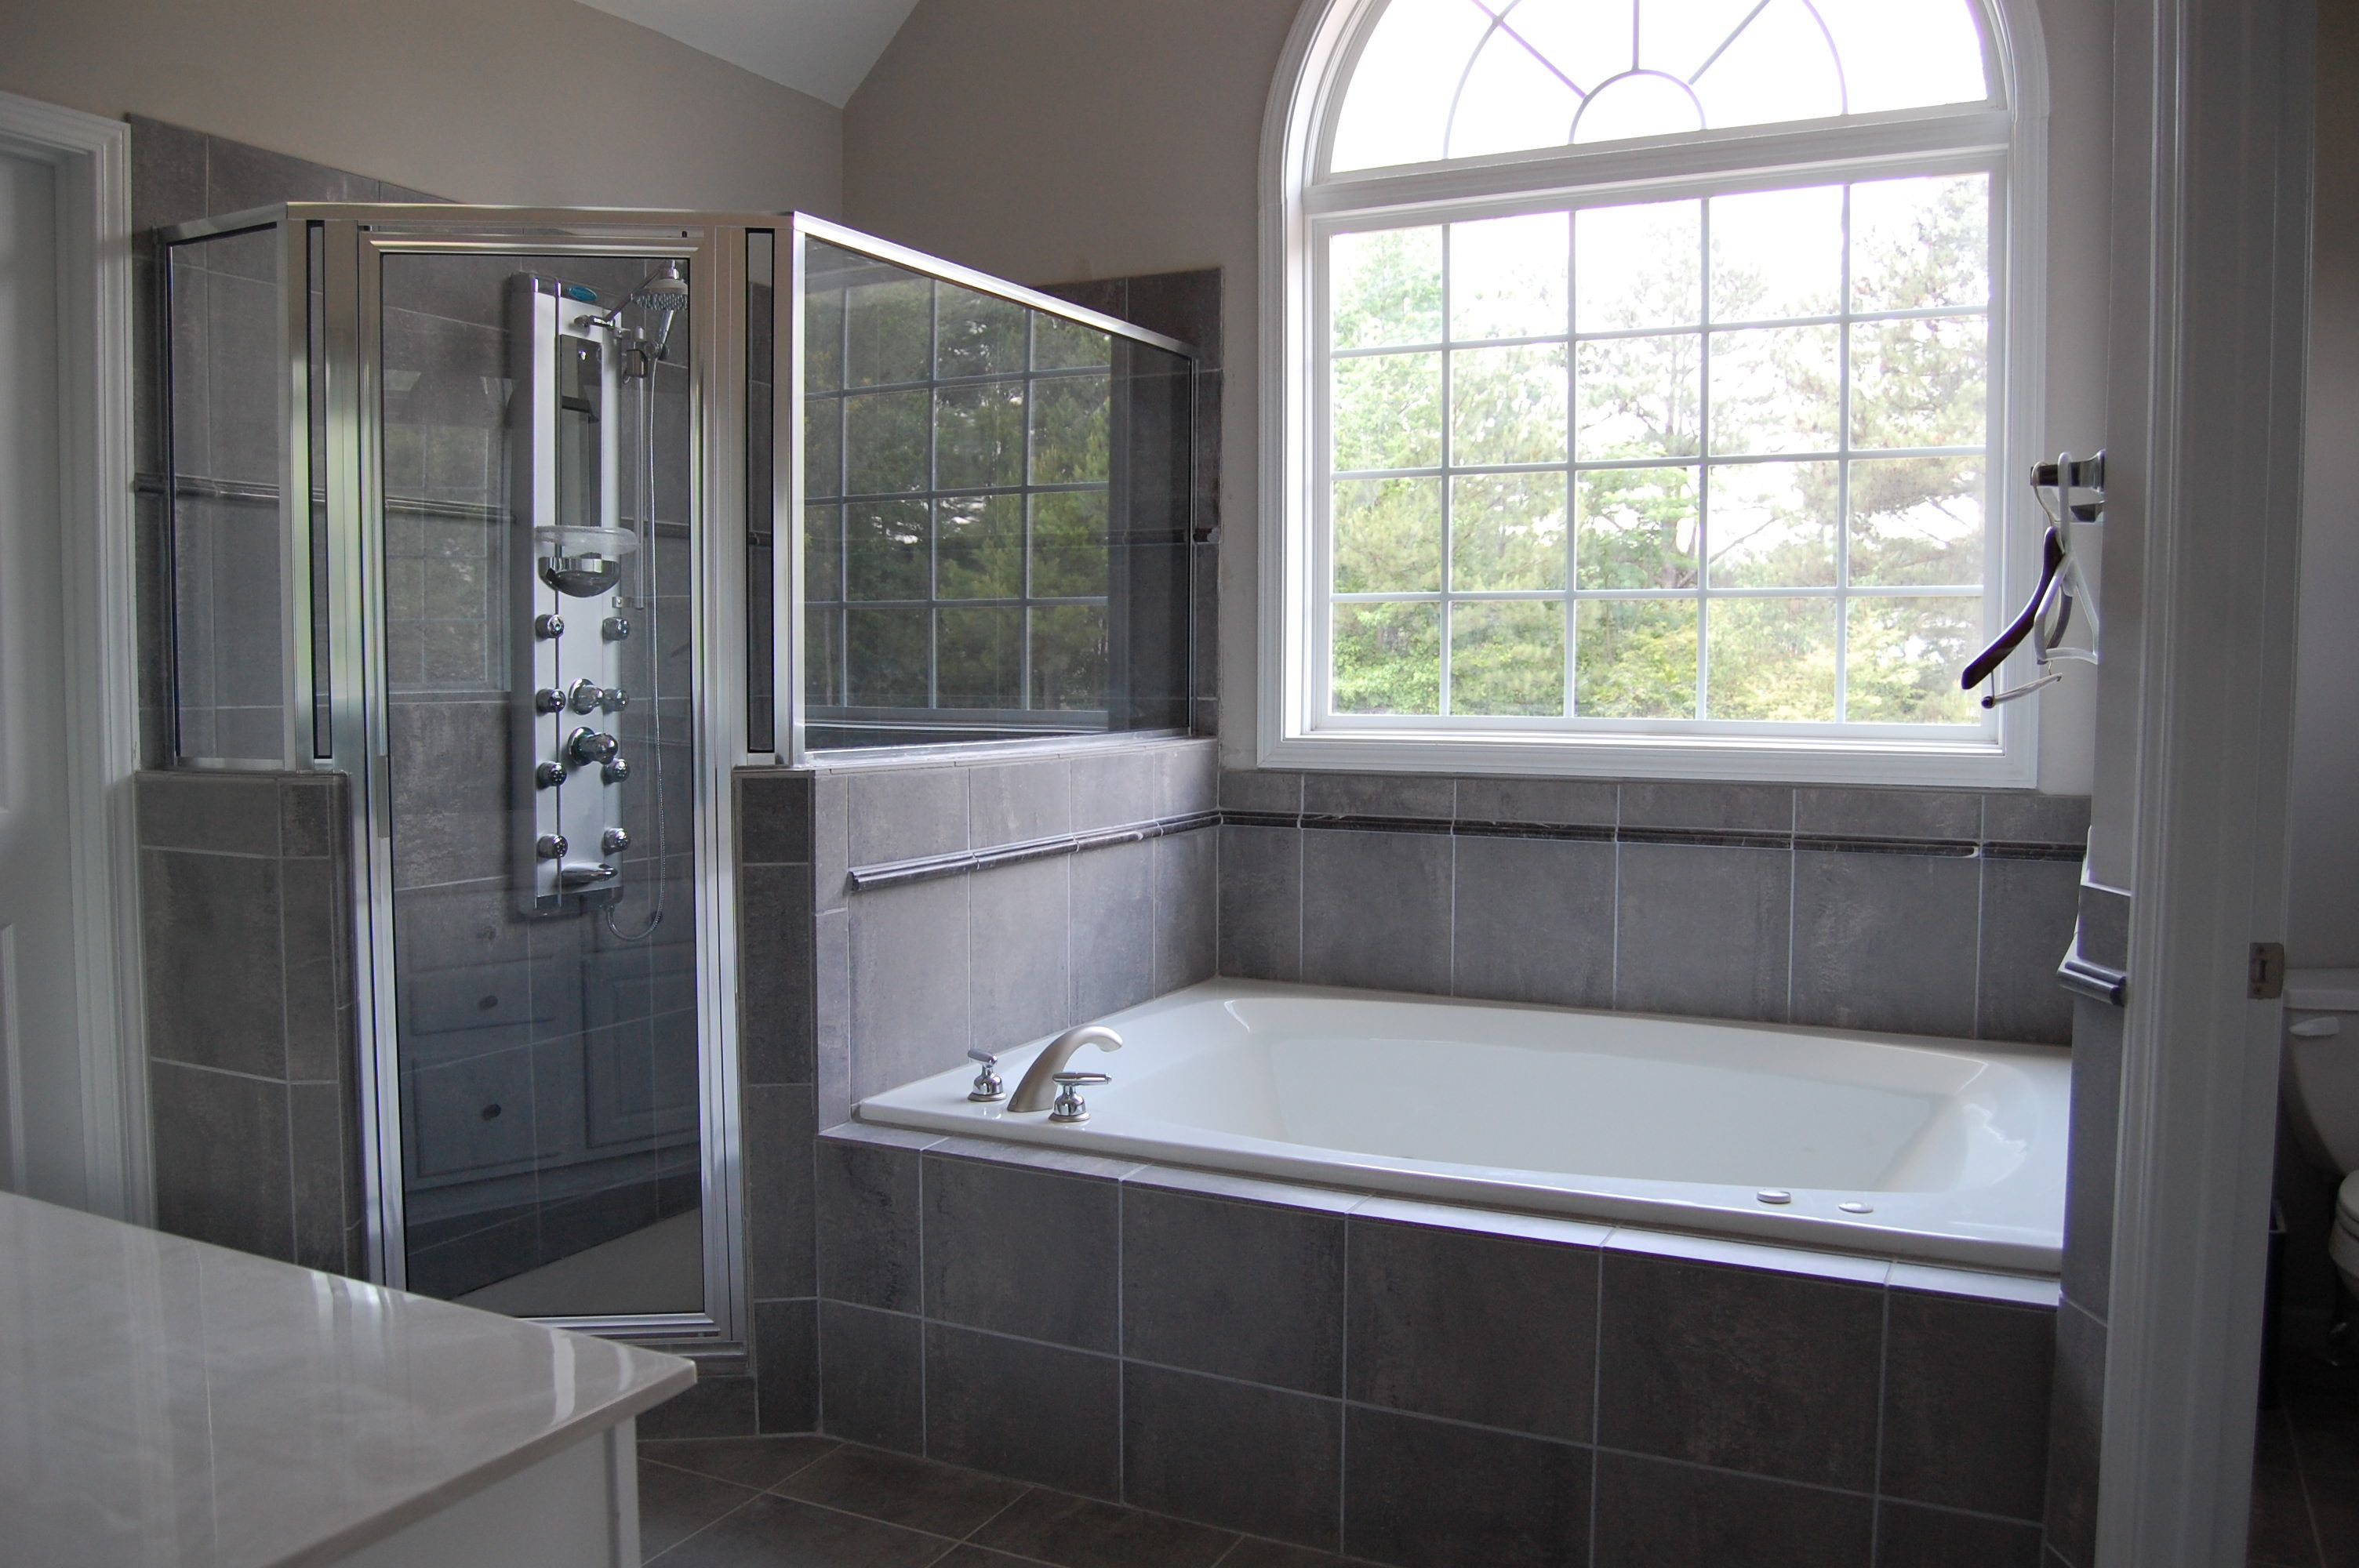 Charmant Bathroom Remodeling Home Depot | ... Options Availableget Free Sizes!get  Amazing Bathroom